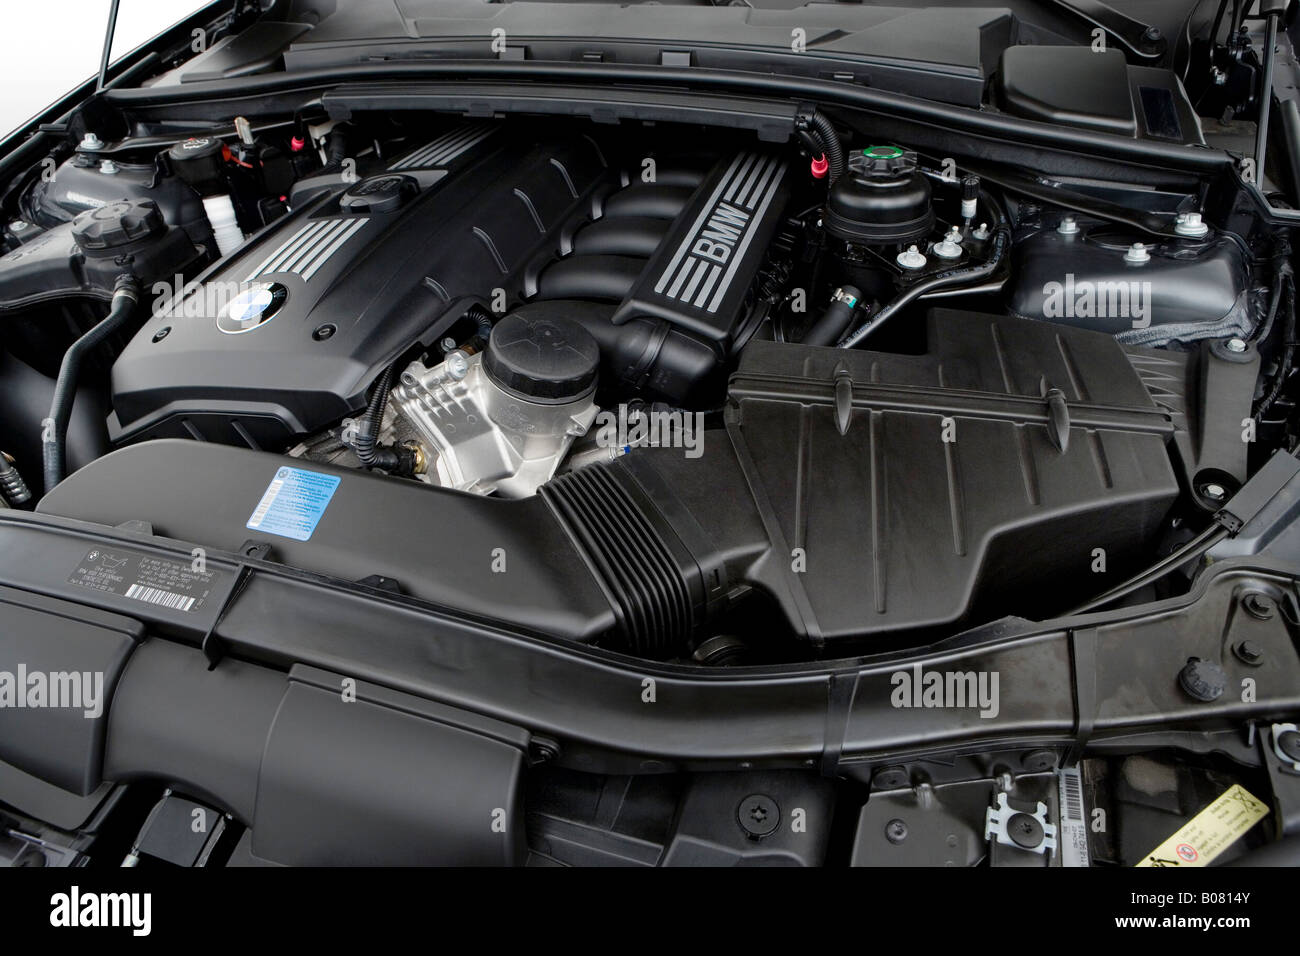 BMW Series I In Gray Engine Stock Photo Royalty Free - Bmw 328i engine